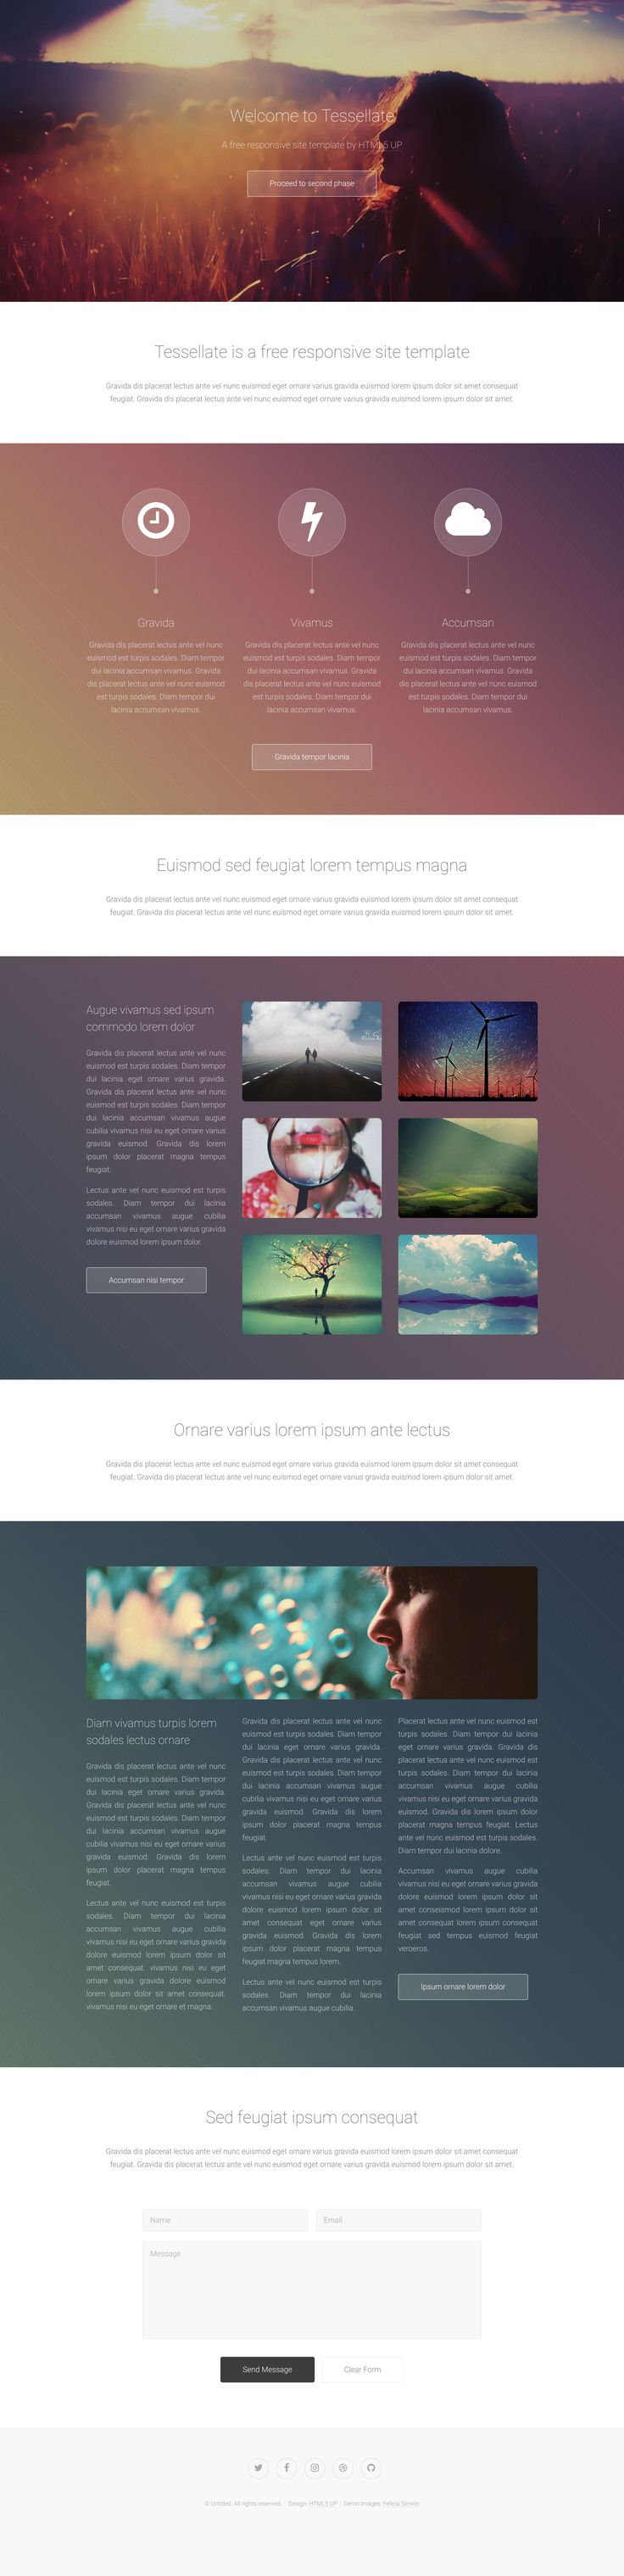 Best Free HTML Templates Images On Pinterest Free Html - Free responsive personal website templates